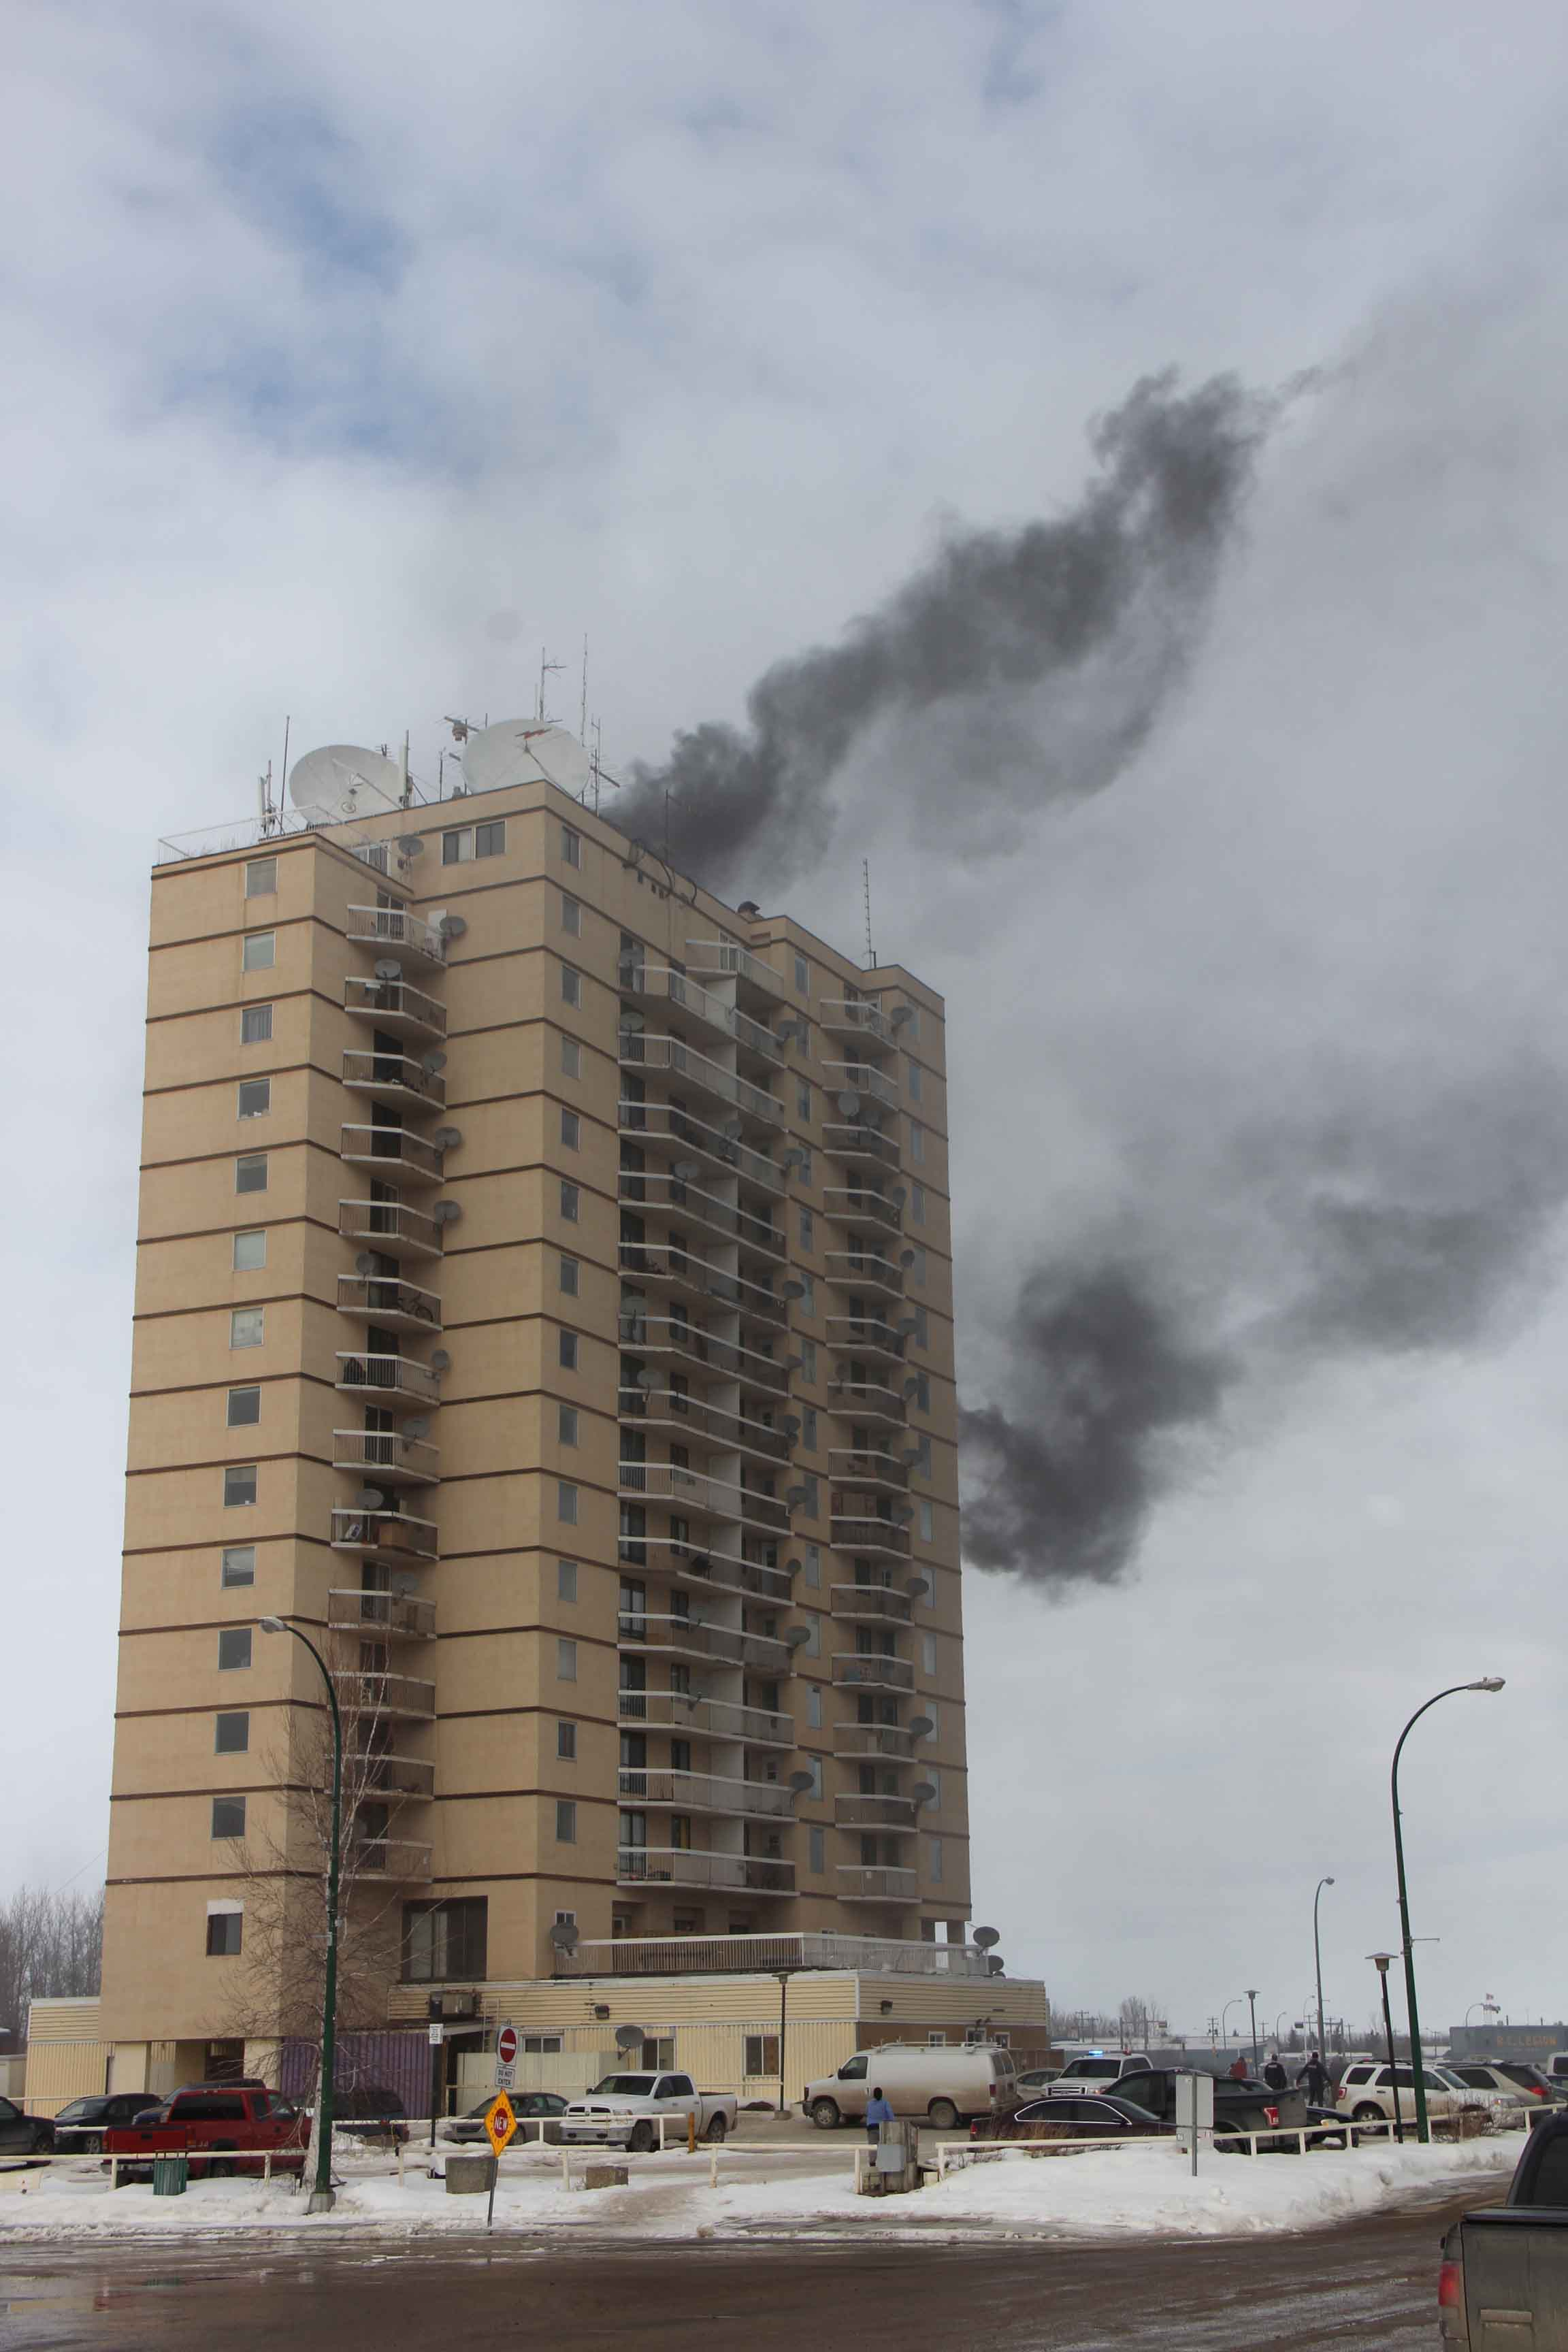 Hay River is still dealing with the aftermath of a March 15 fire on the 11th floor of the Mackenzie Place apartment building. No residents are currently living in the structure and it is uncertain when they may return. NNSL file photo